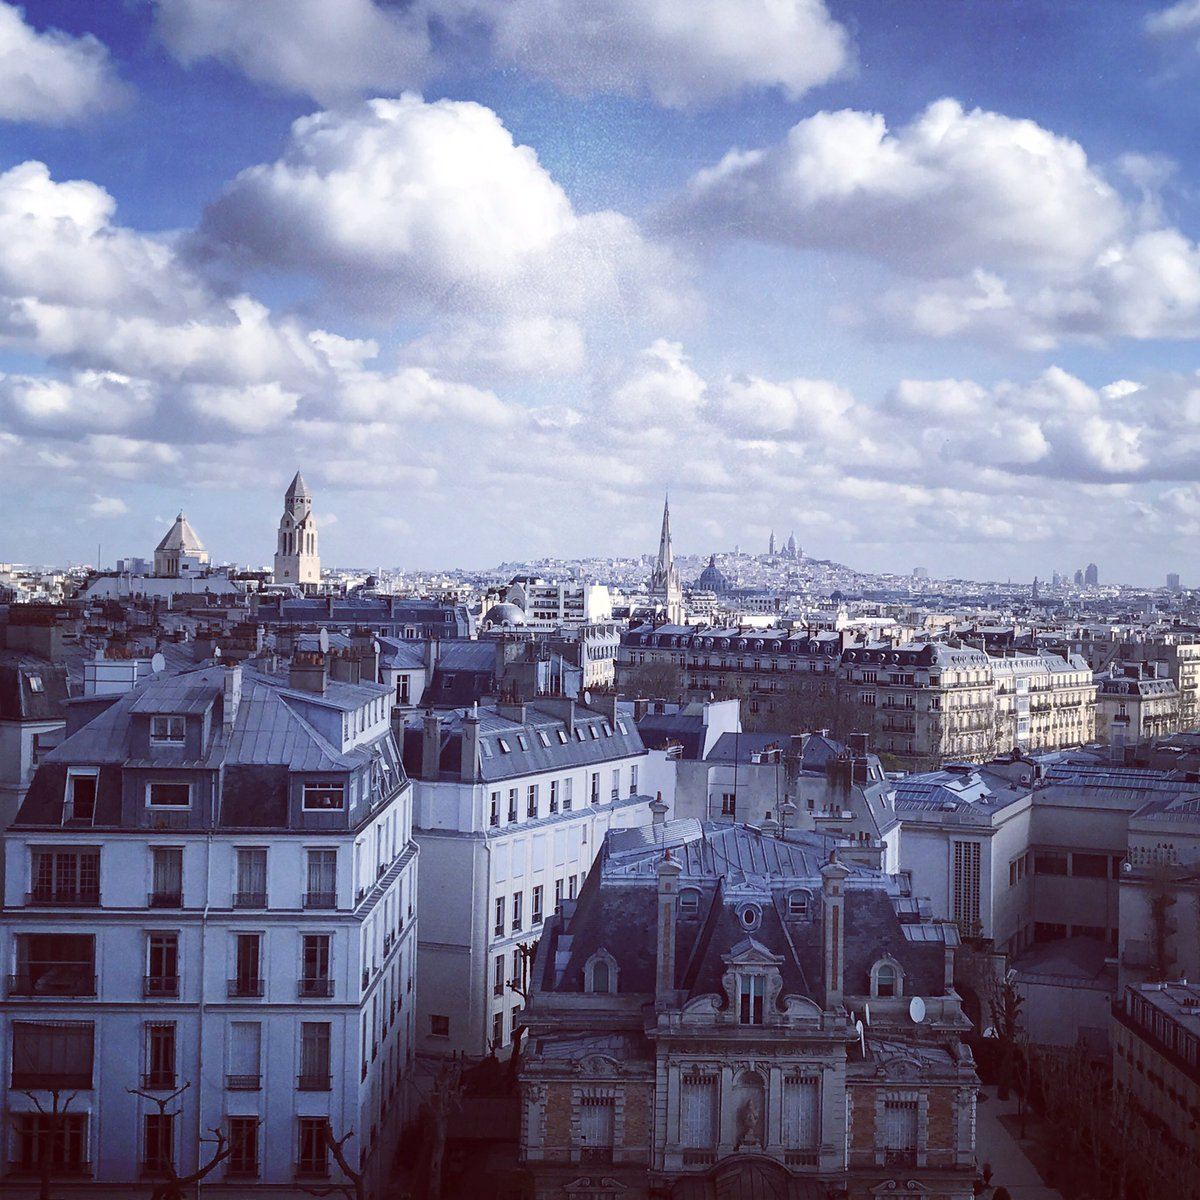 Paris RoofTops from the @ShangriLaHotels https://t.co/zqHF59SRmA